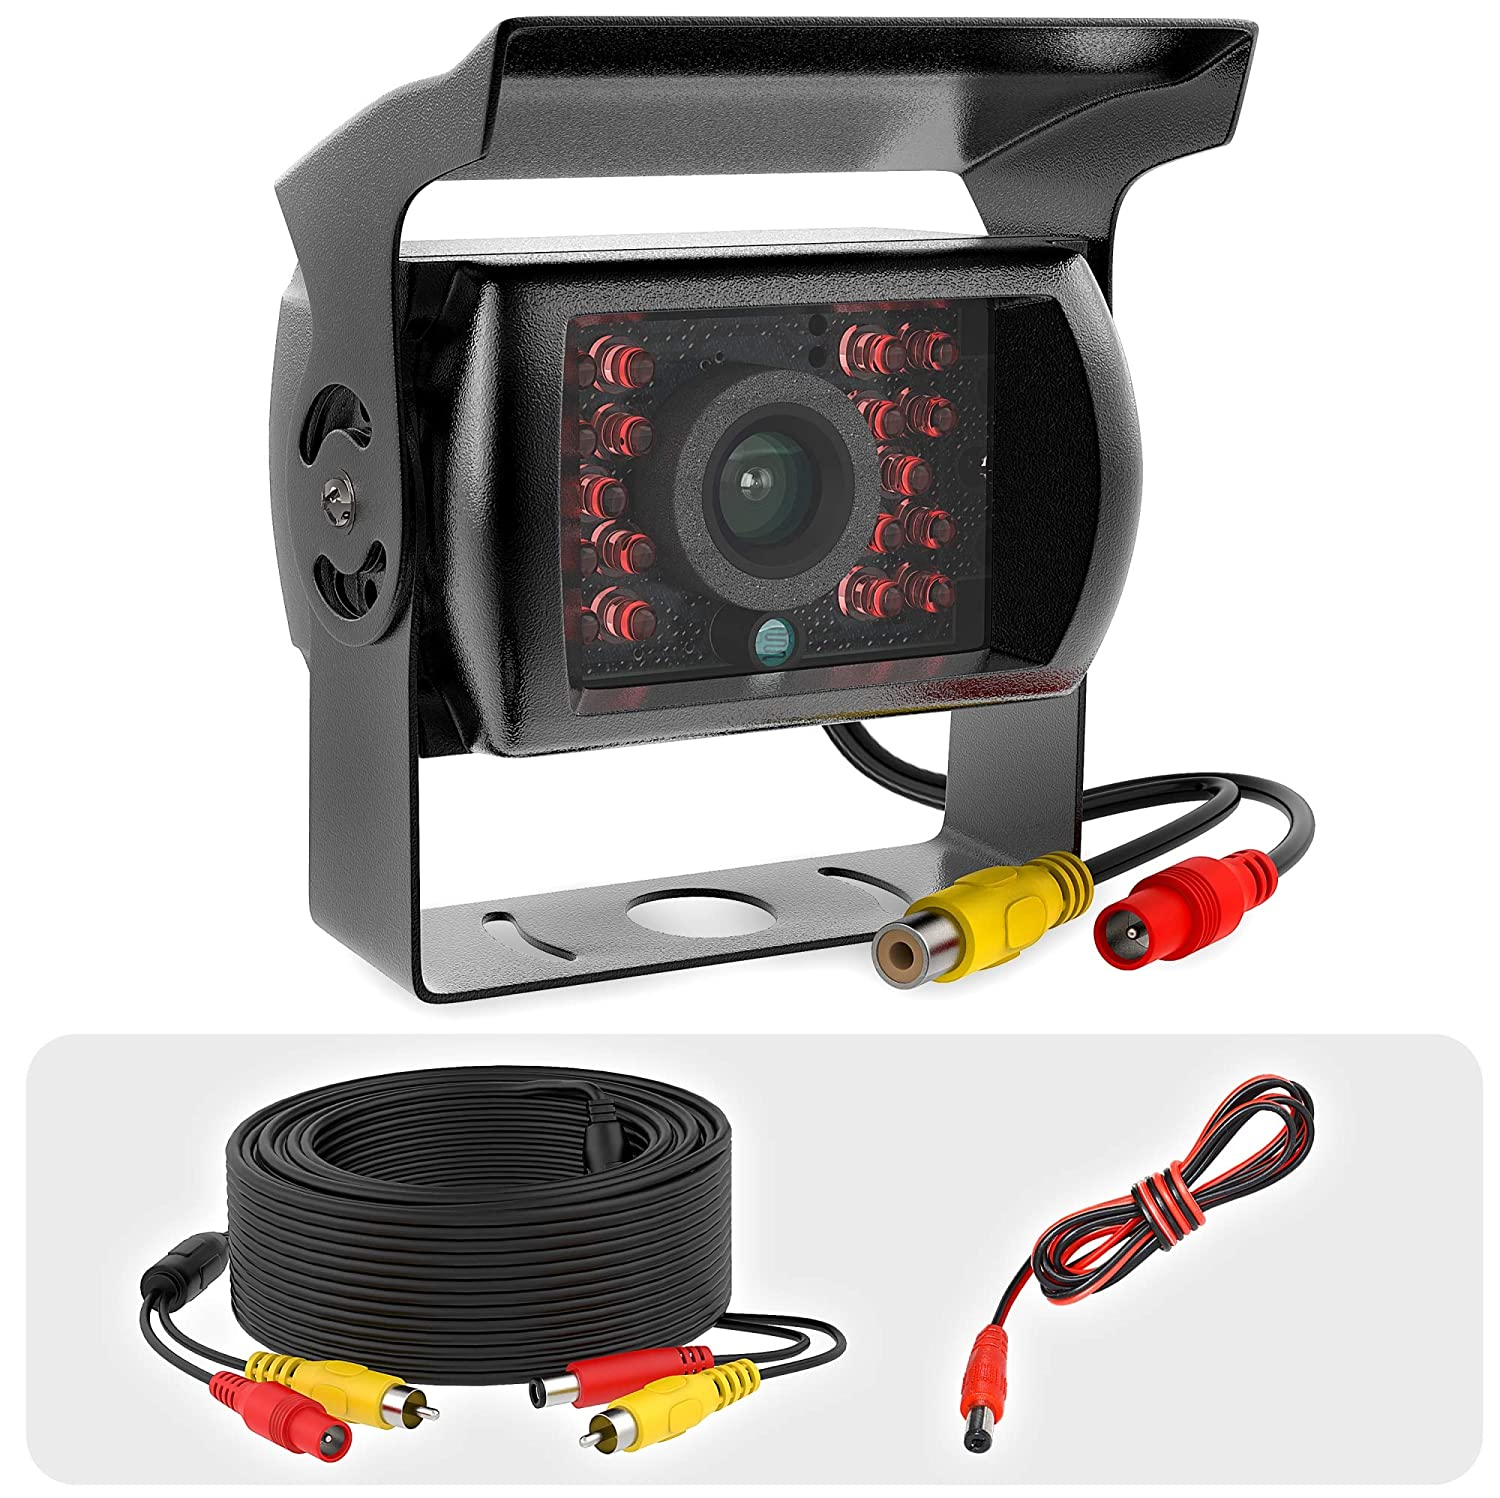 Truck RCA Rear View Backup Camera Heavy Duty